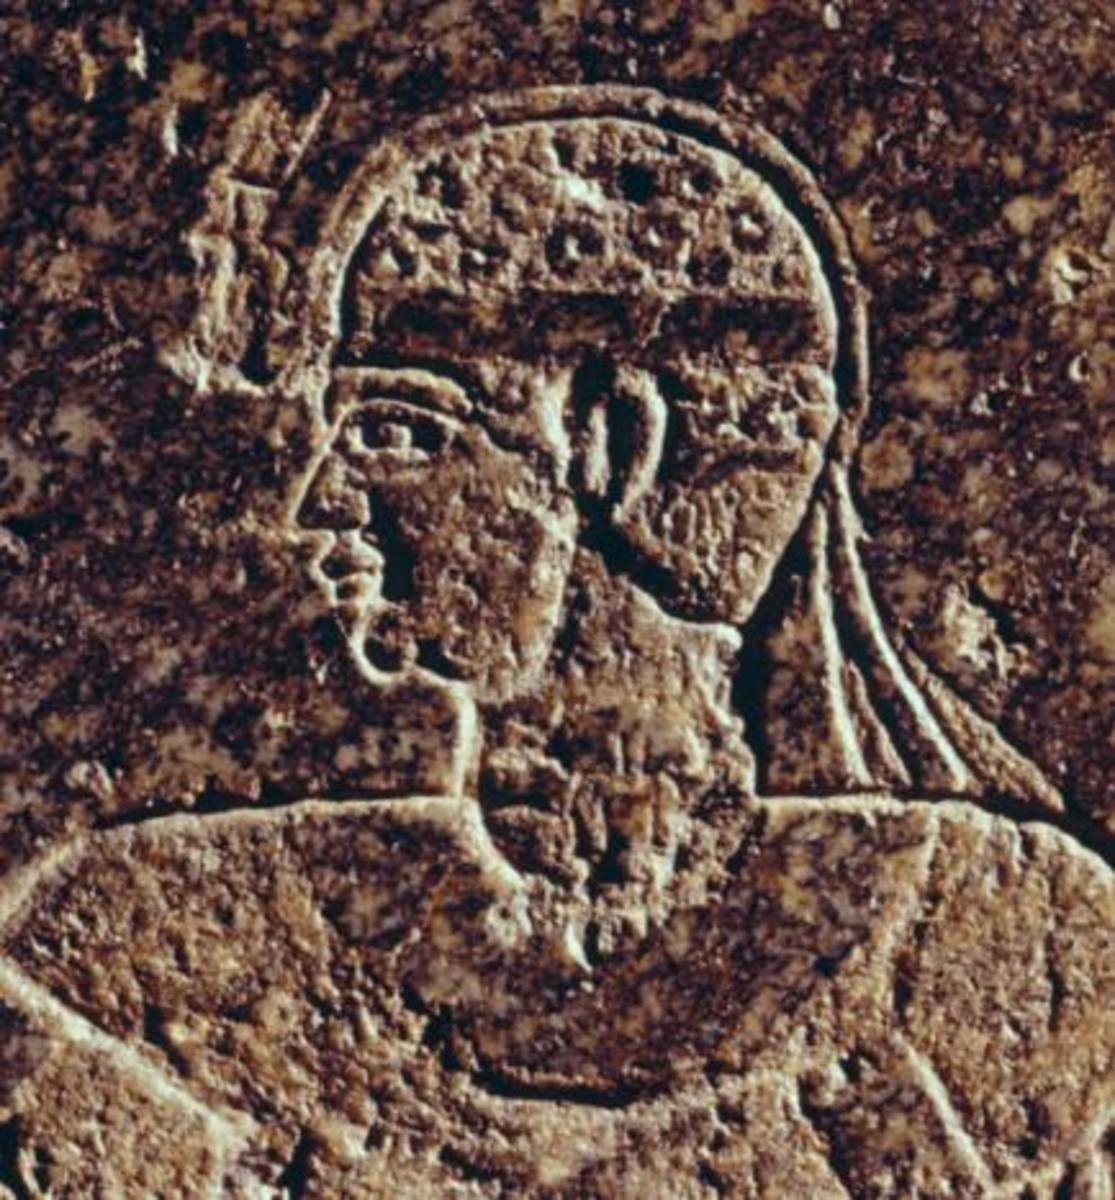 """""""The Story of a Nubian King Etched in Stone."""" (http://www.theroot.com/articles/history/2014/12/blacks_in_western_art_the_story_of_a_nubian_king_etched_in_stone/)"""